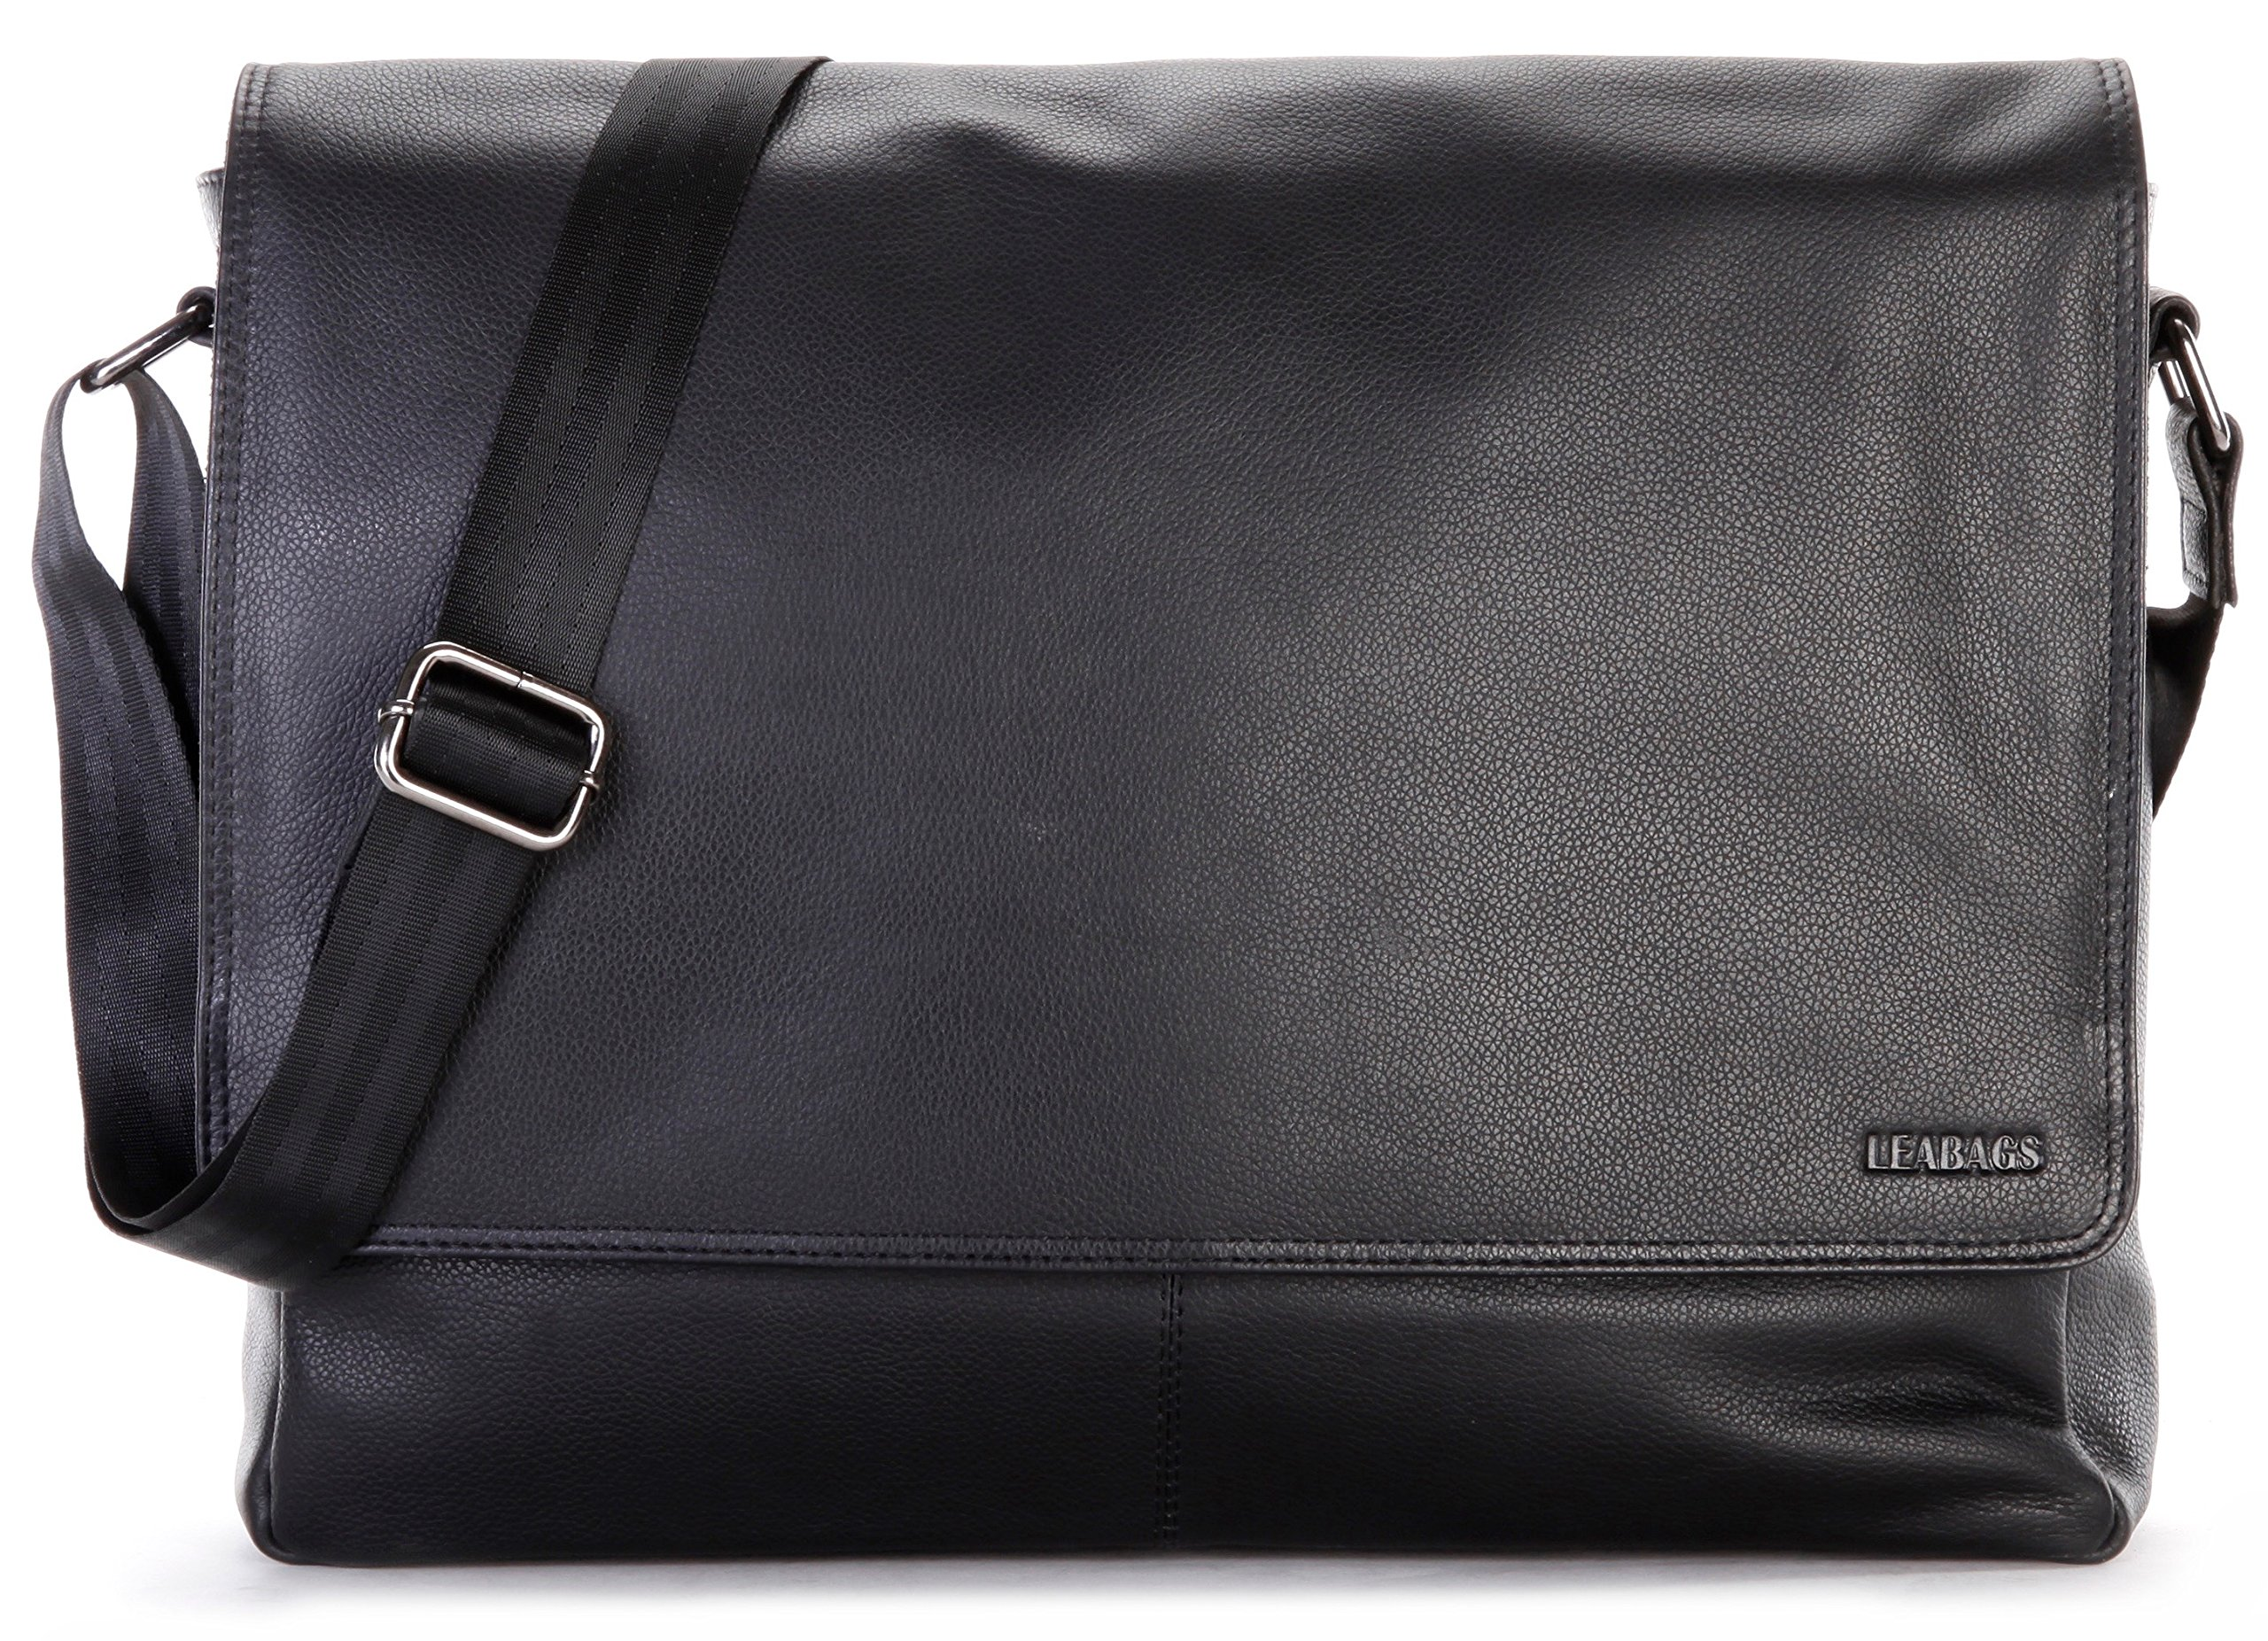 LEABAGS Oxford genuine buffalo leather messenger bag in vintage style - OnyxBlack